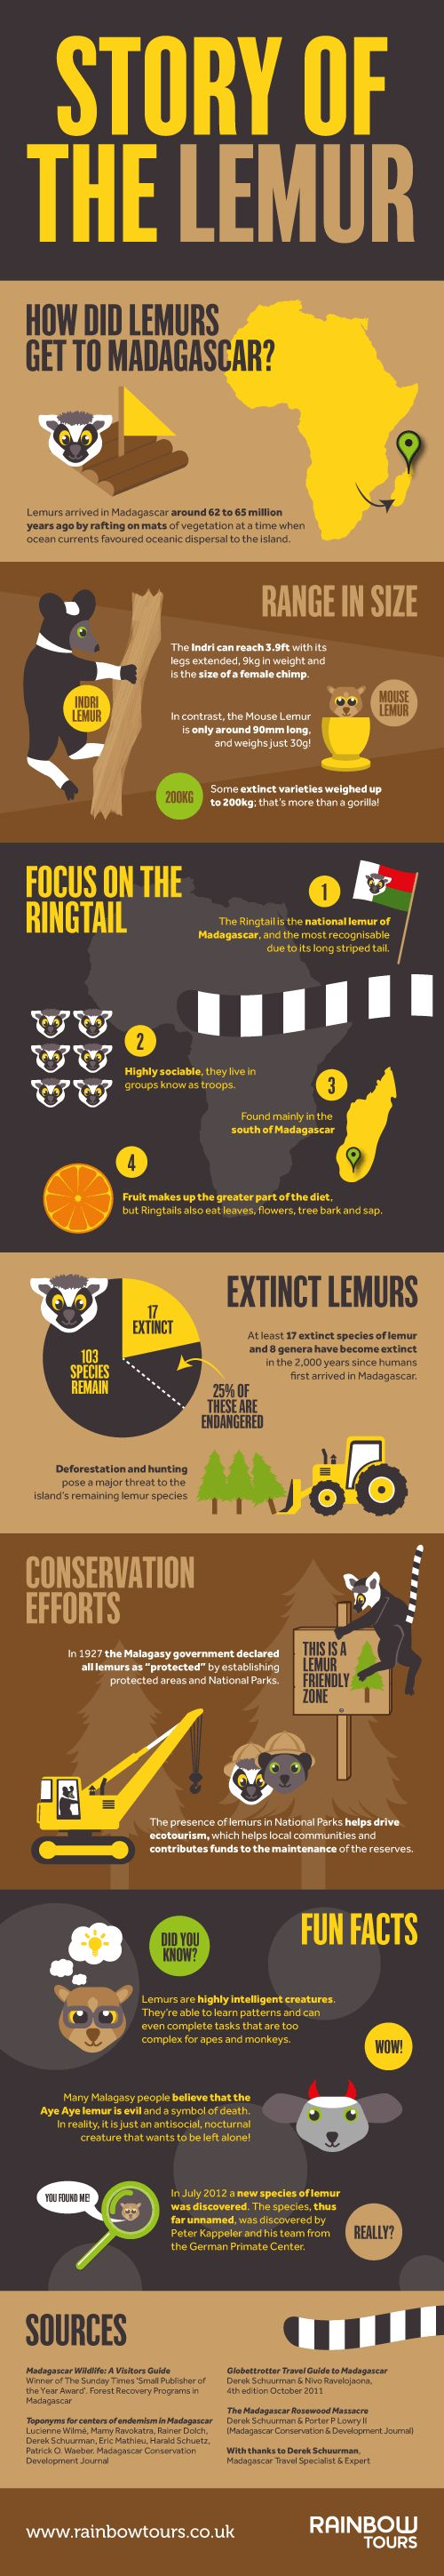 The Story of Lemurs Infographic